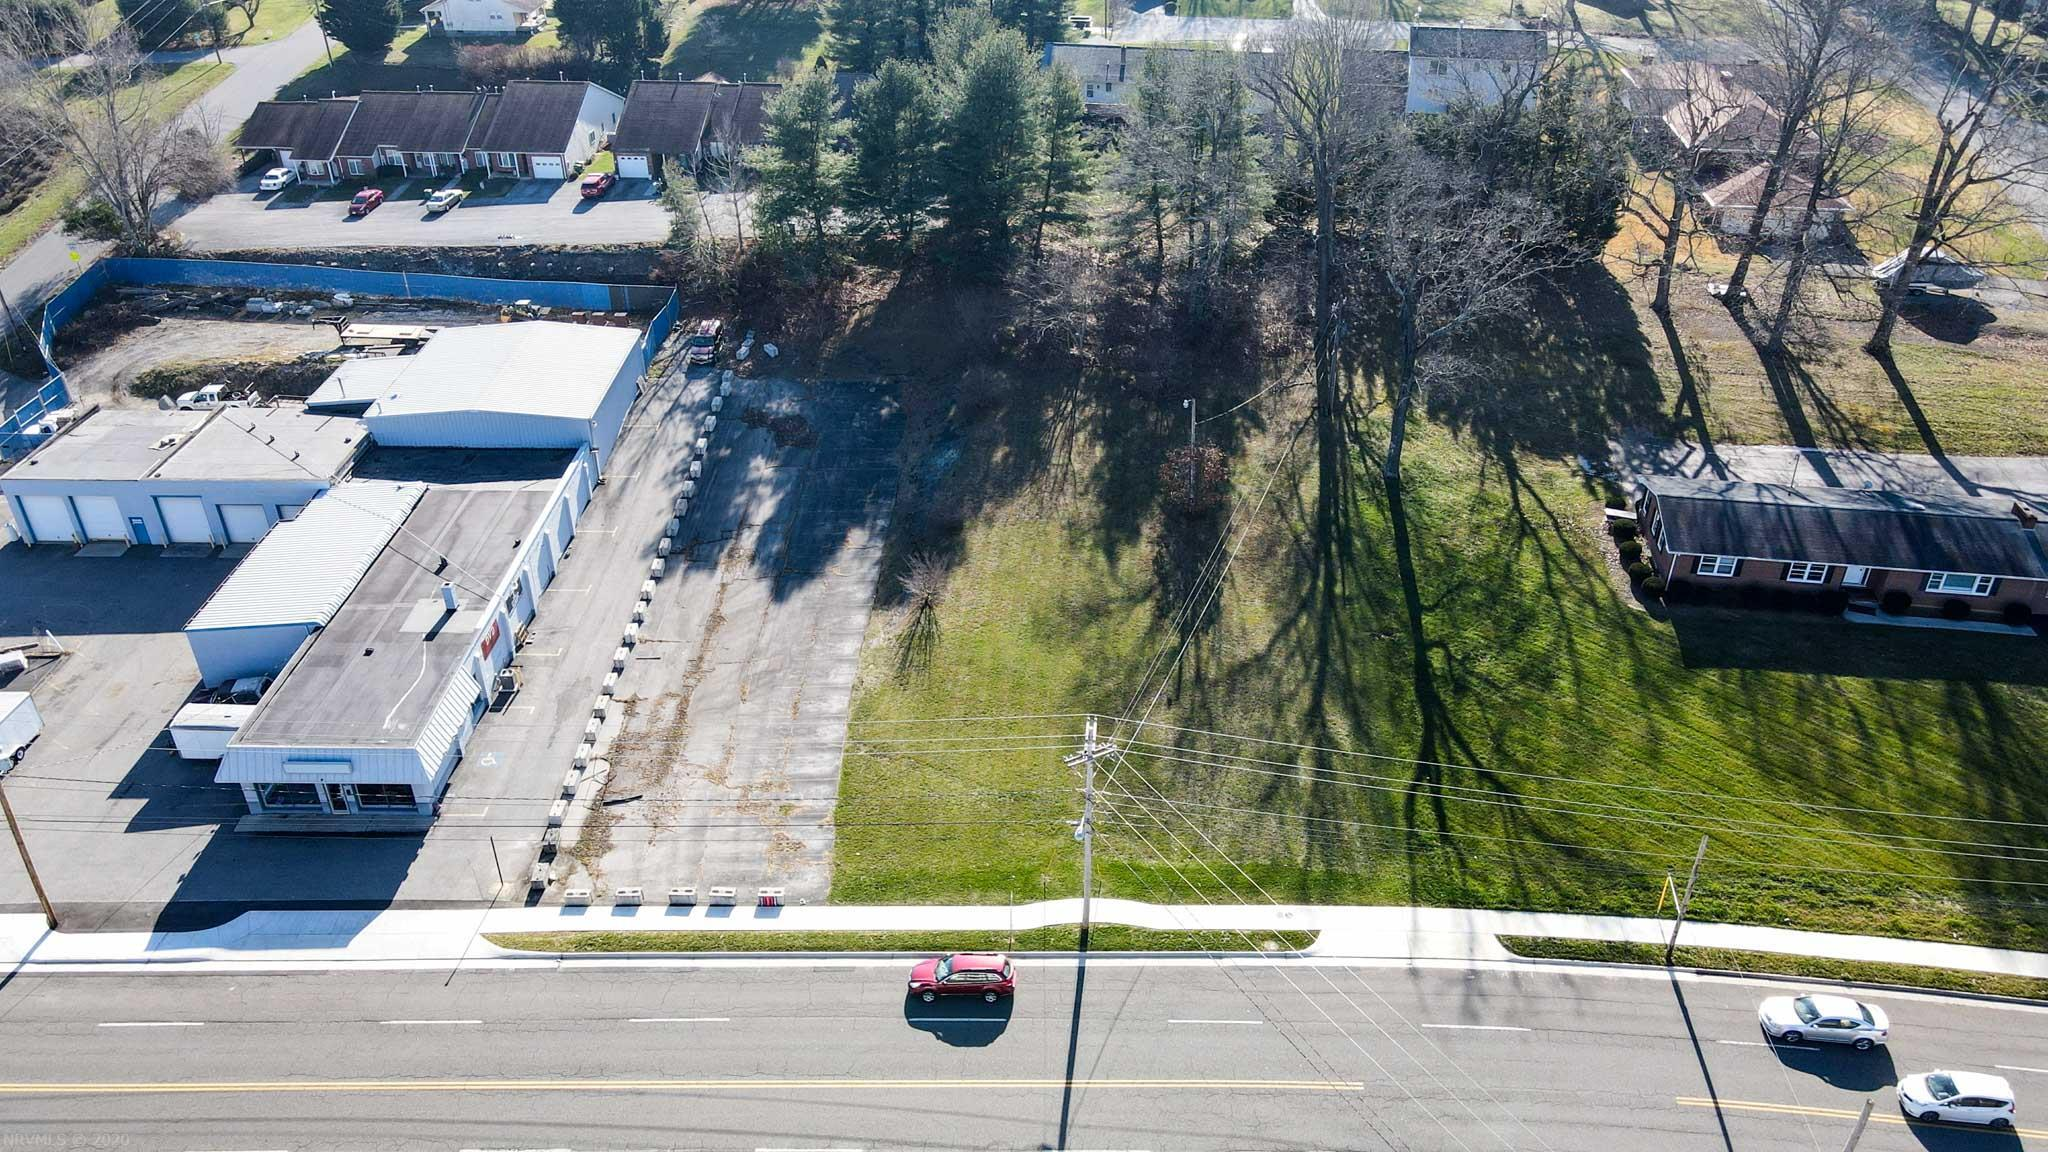 Commercial lot with 164 ft. of frontage on Roanoke St.   Plan your new business from the ground up on this level lot.  VDOT approved entrance recently installed. Town of Christiansburg has completed sidewalk installation. Parking area is included. Concrete barriers along left side will be removed by seller. Temp electric pole has been disconnected, will be removed by seller.